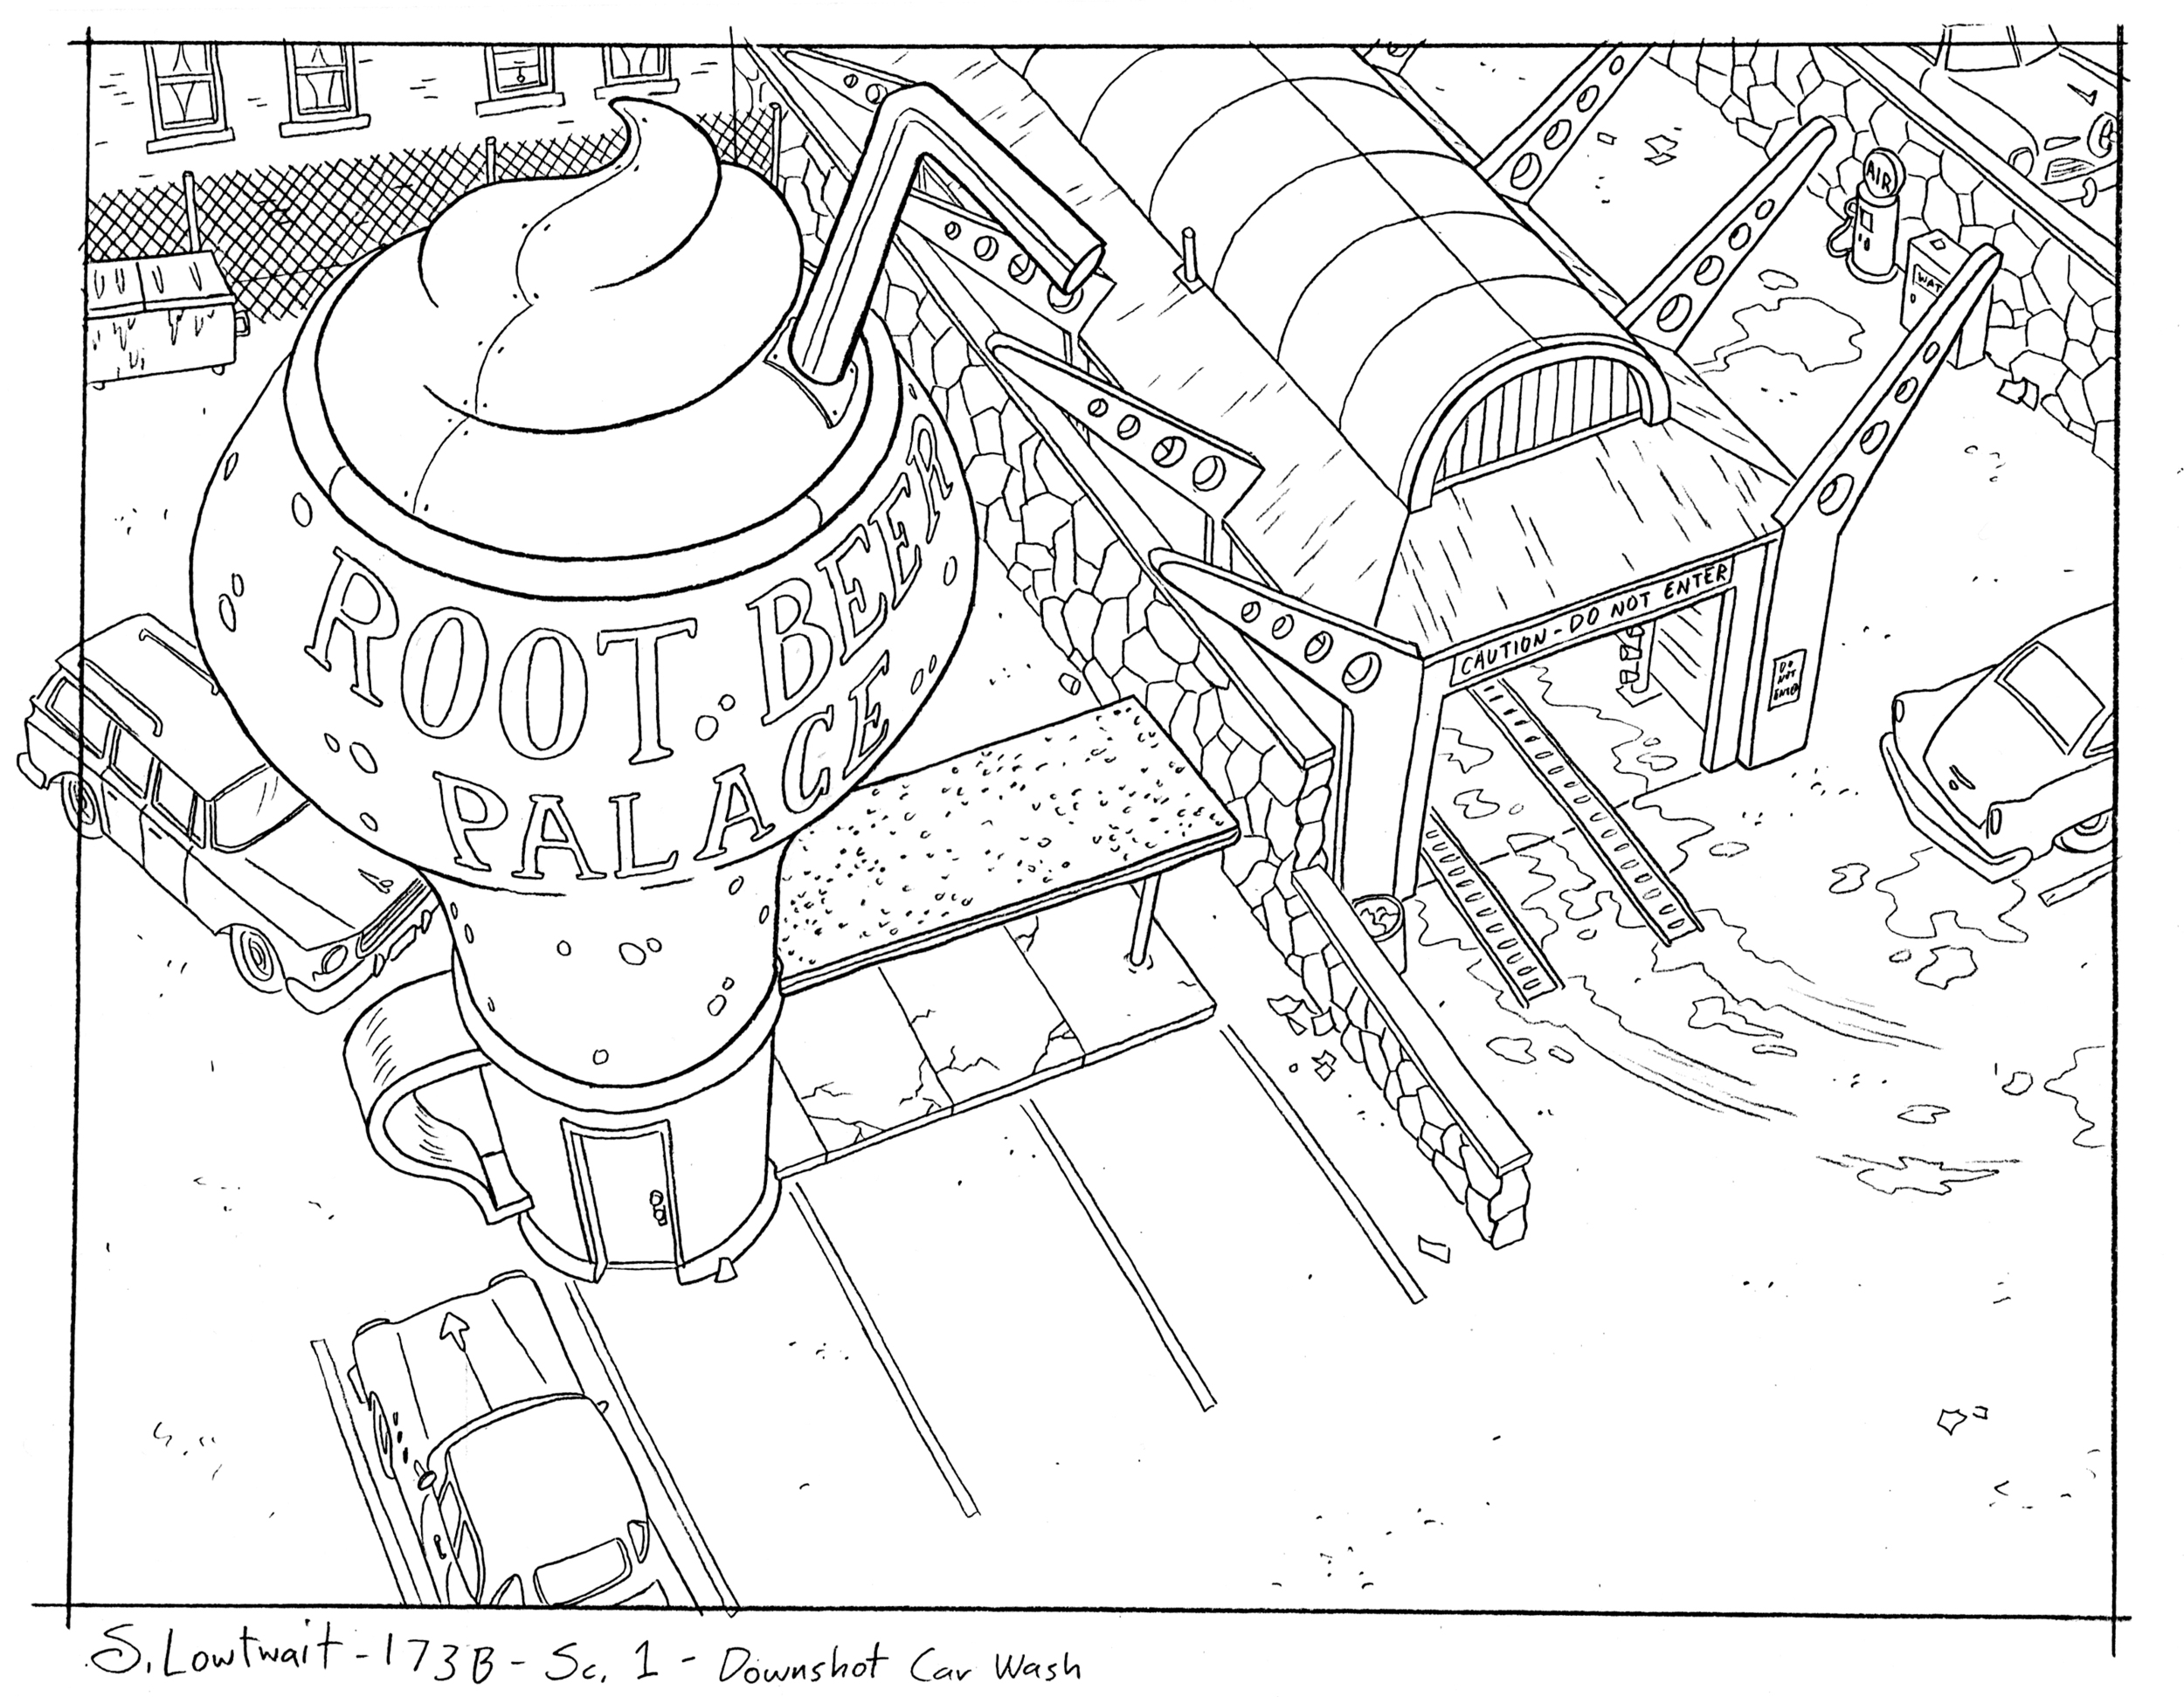 The realism of the city didn't often allow for more imaginative architecture, but sometimes I got to get morecreative.